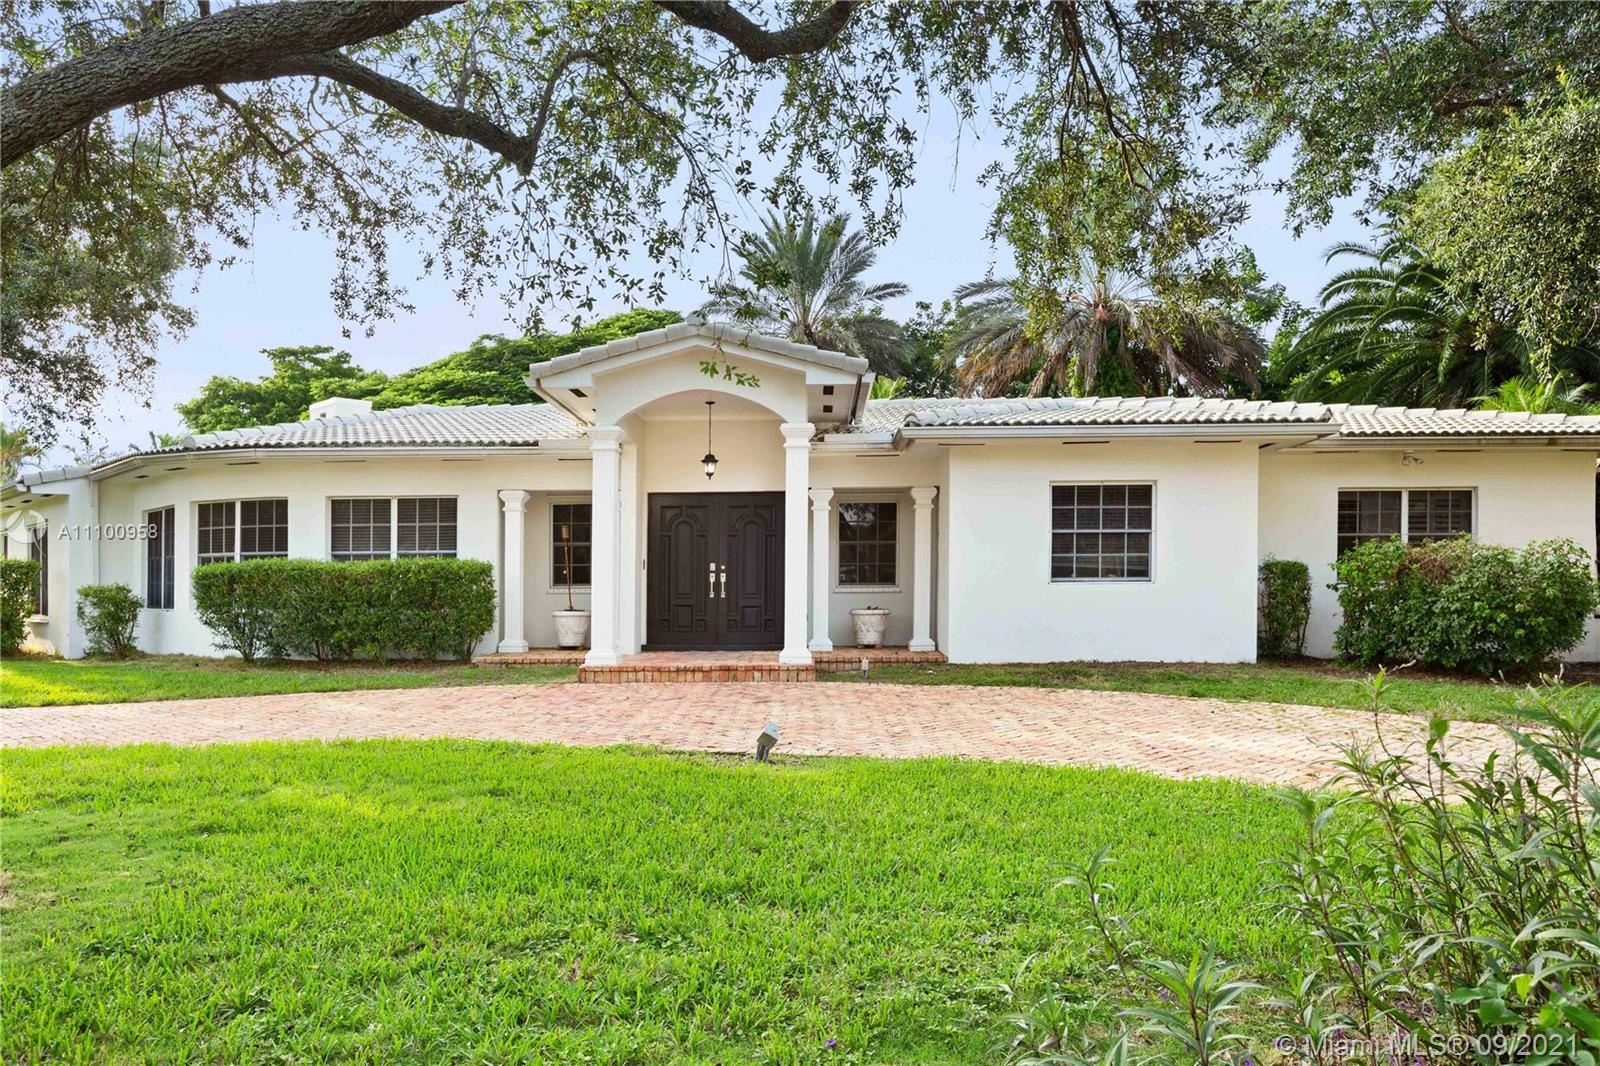 Photo of 505 Luenga Ave, Coral Gables, FL 33146 (MLS # A11100958)